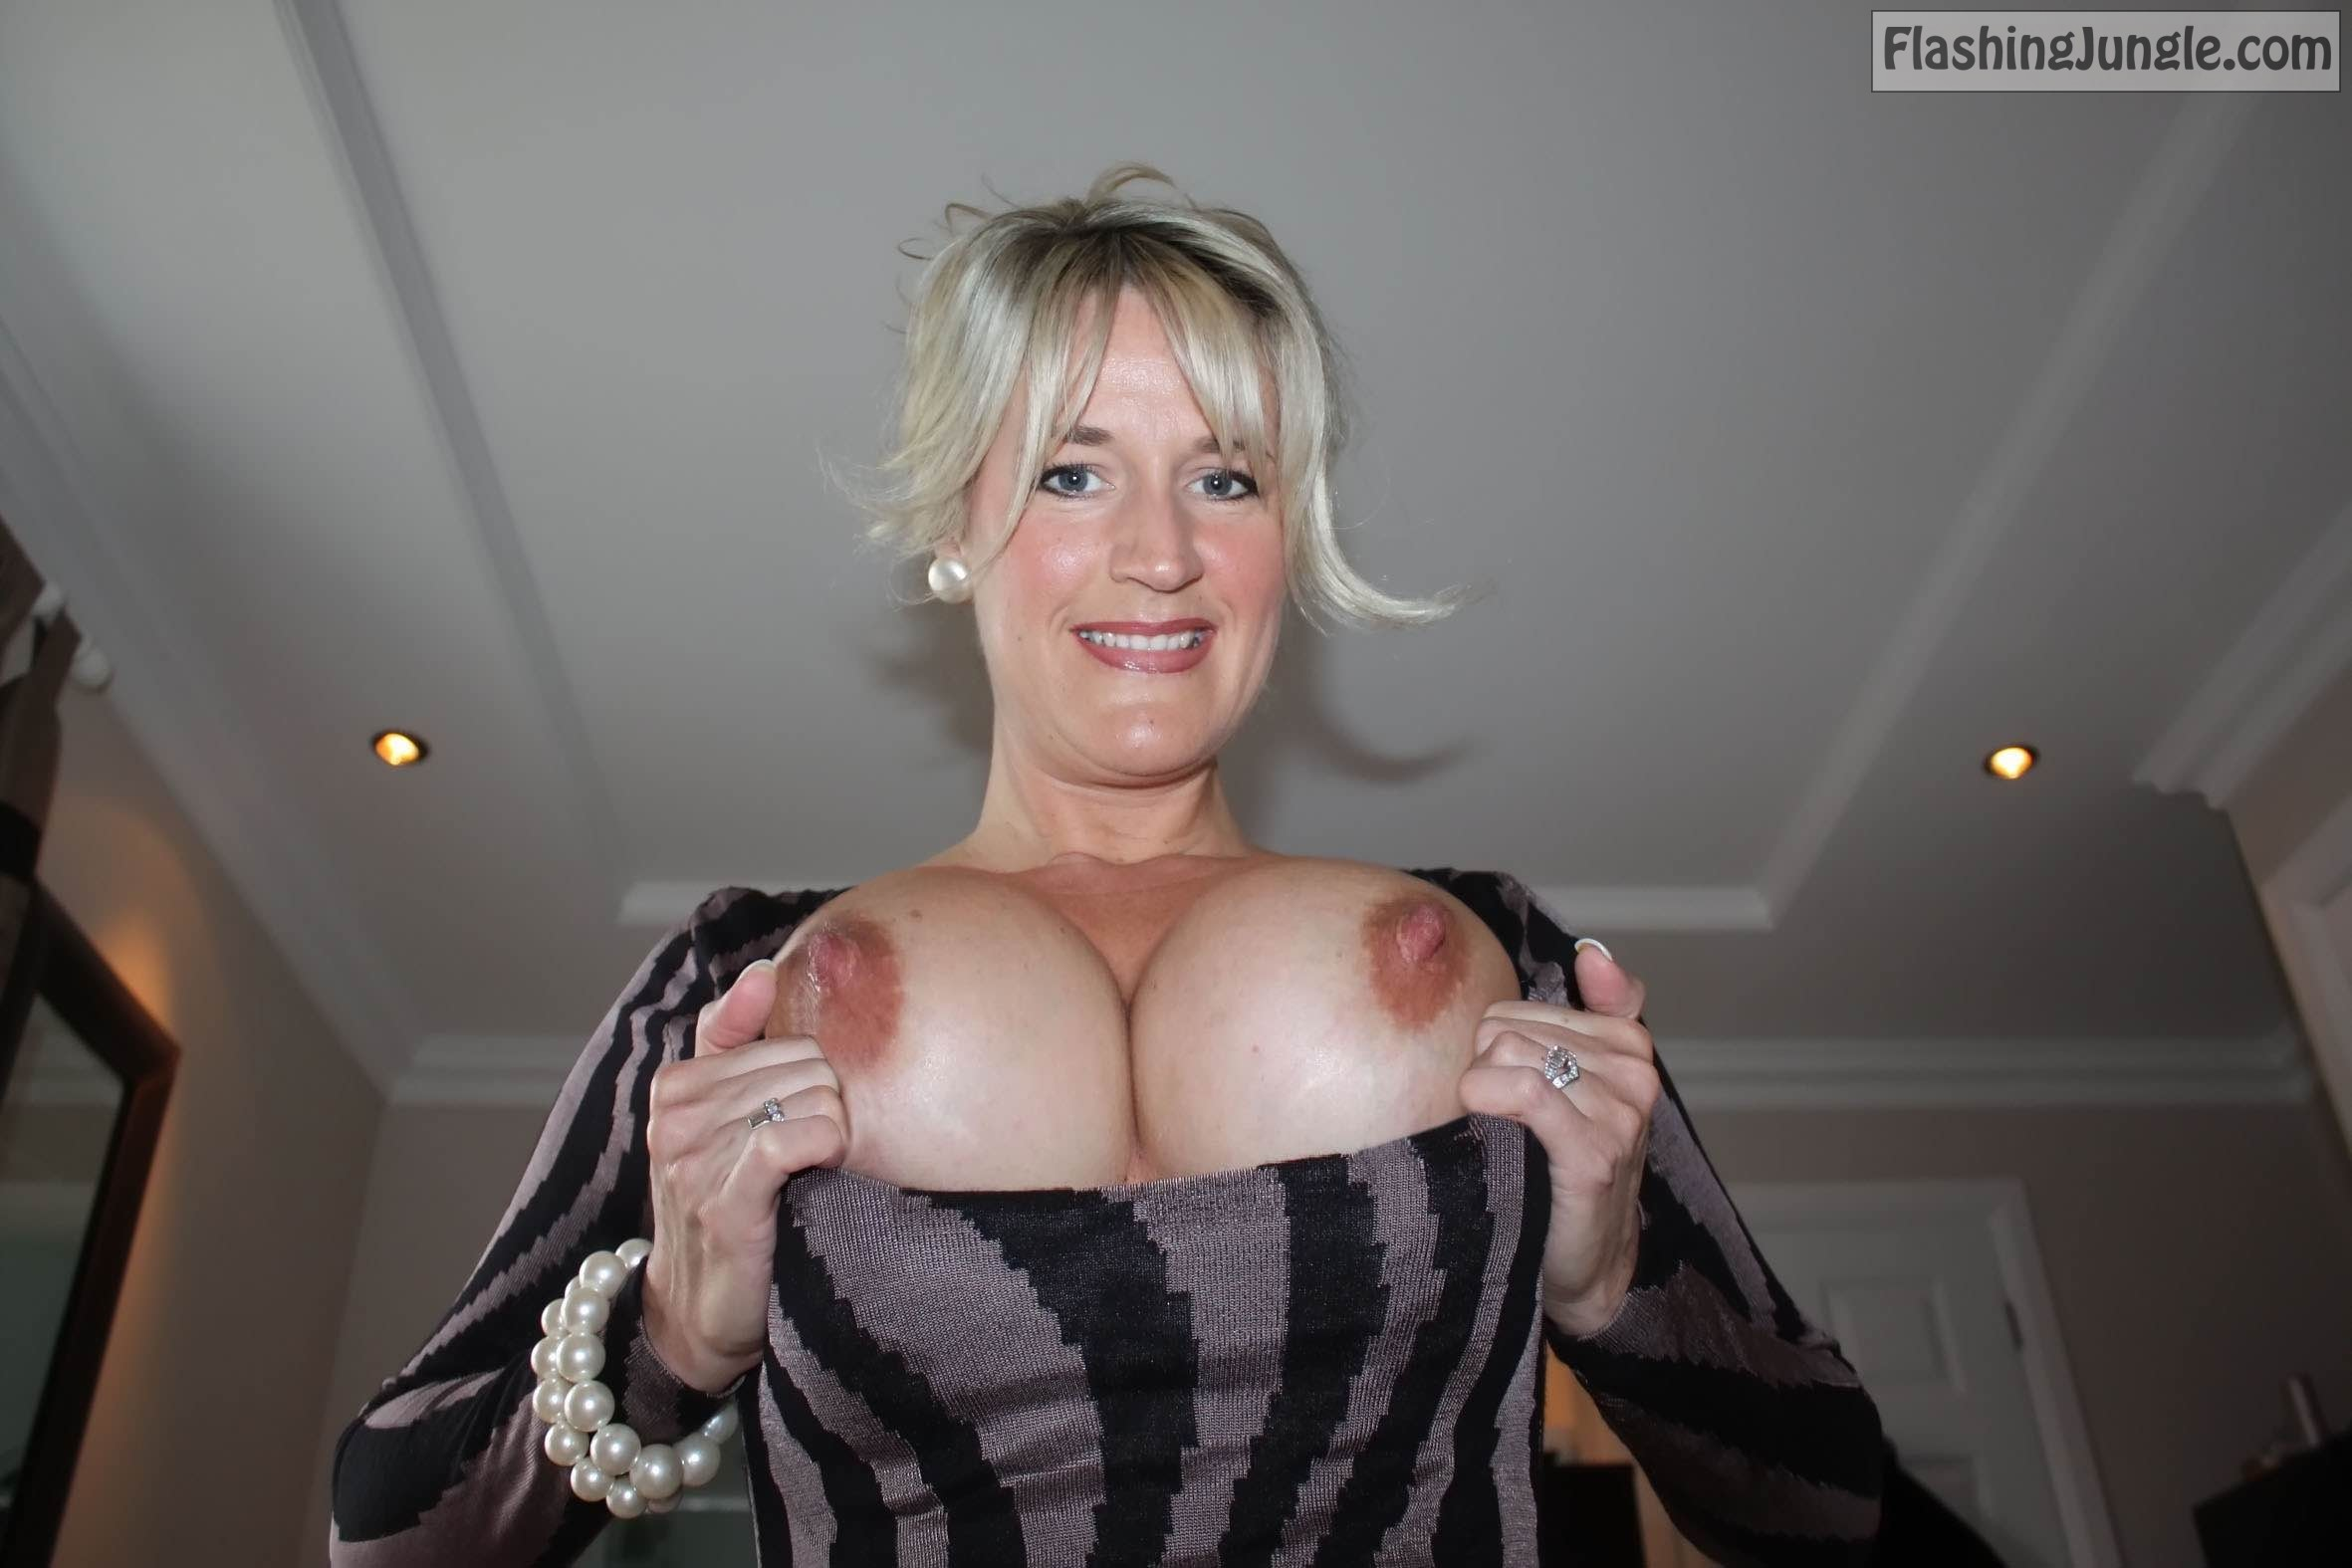 Real Nudity MILF Flashing Pics Hotwife Pics Boobs Flash Pics Bitch Flashing Pics